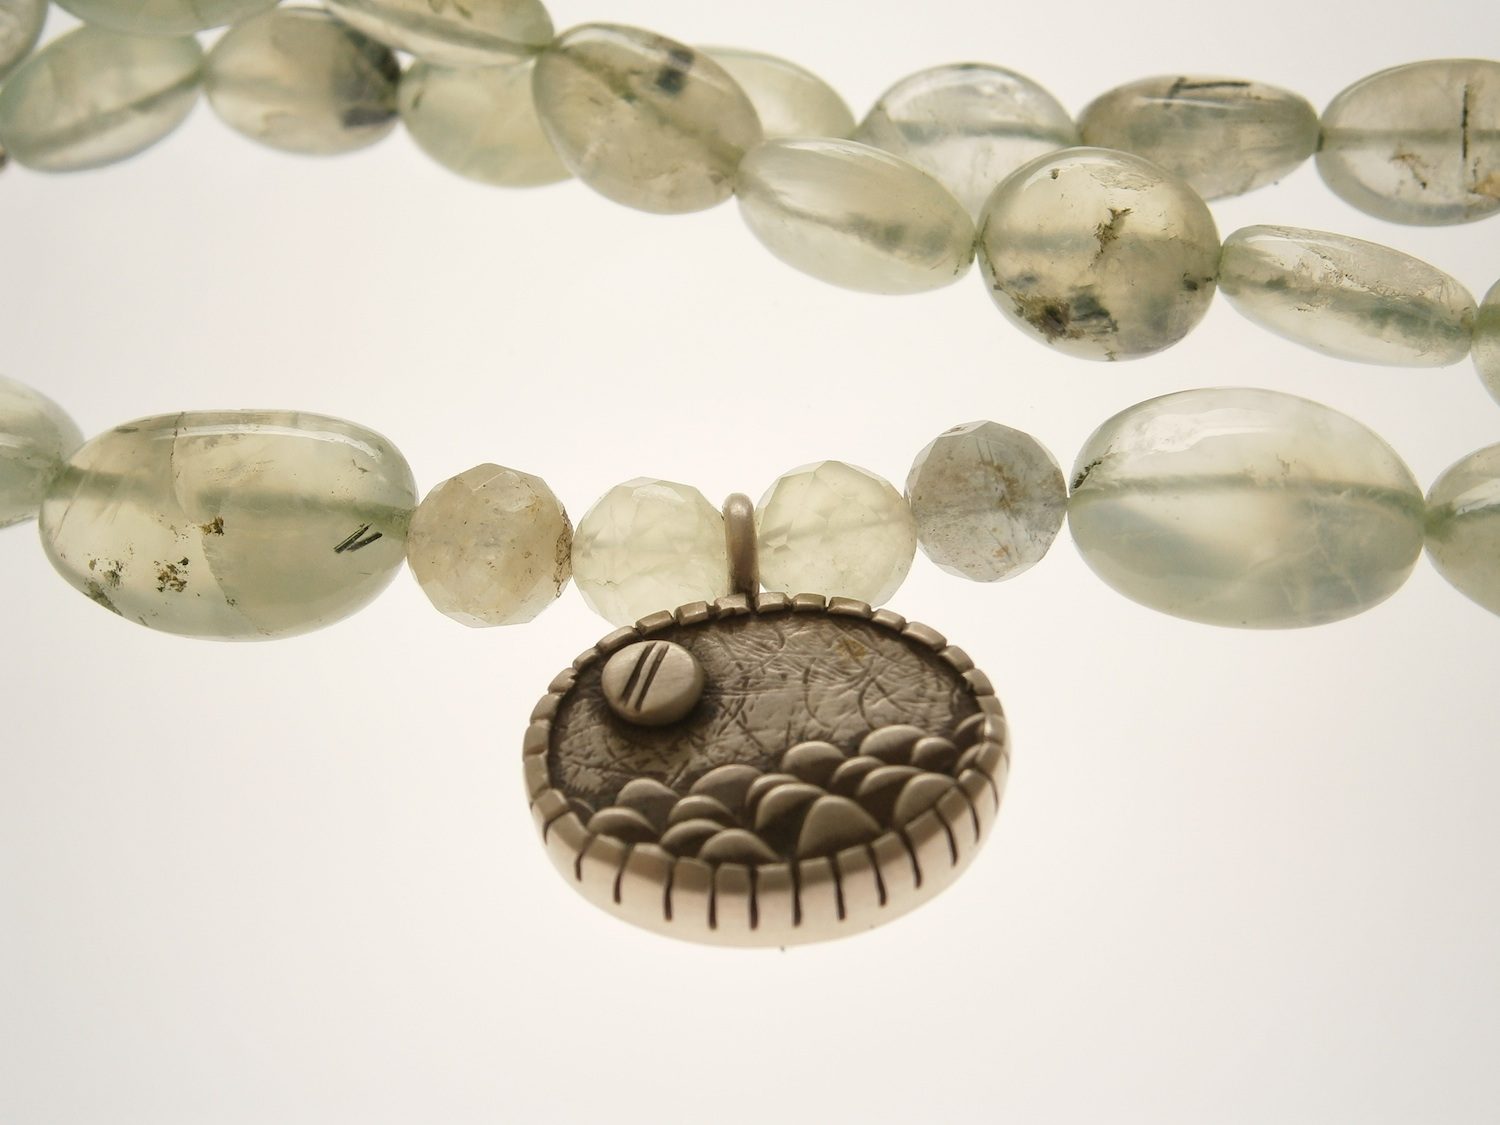 Ocean pendant on prehnite beads